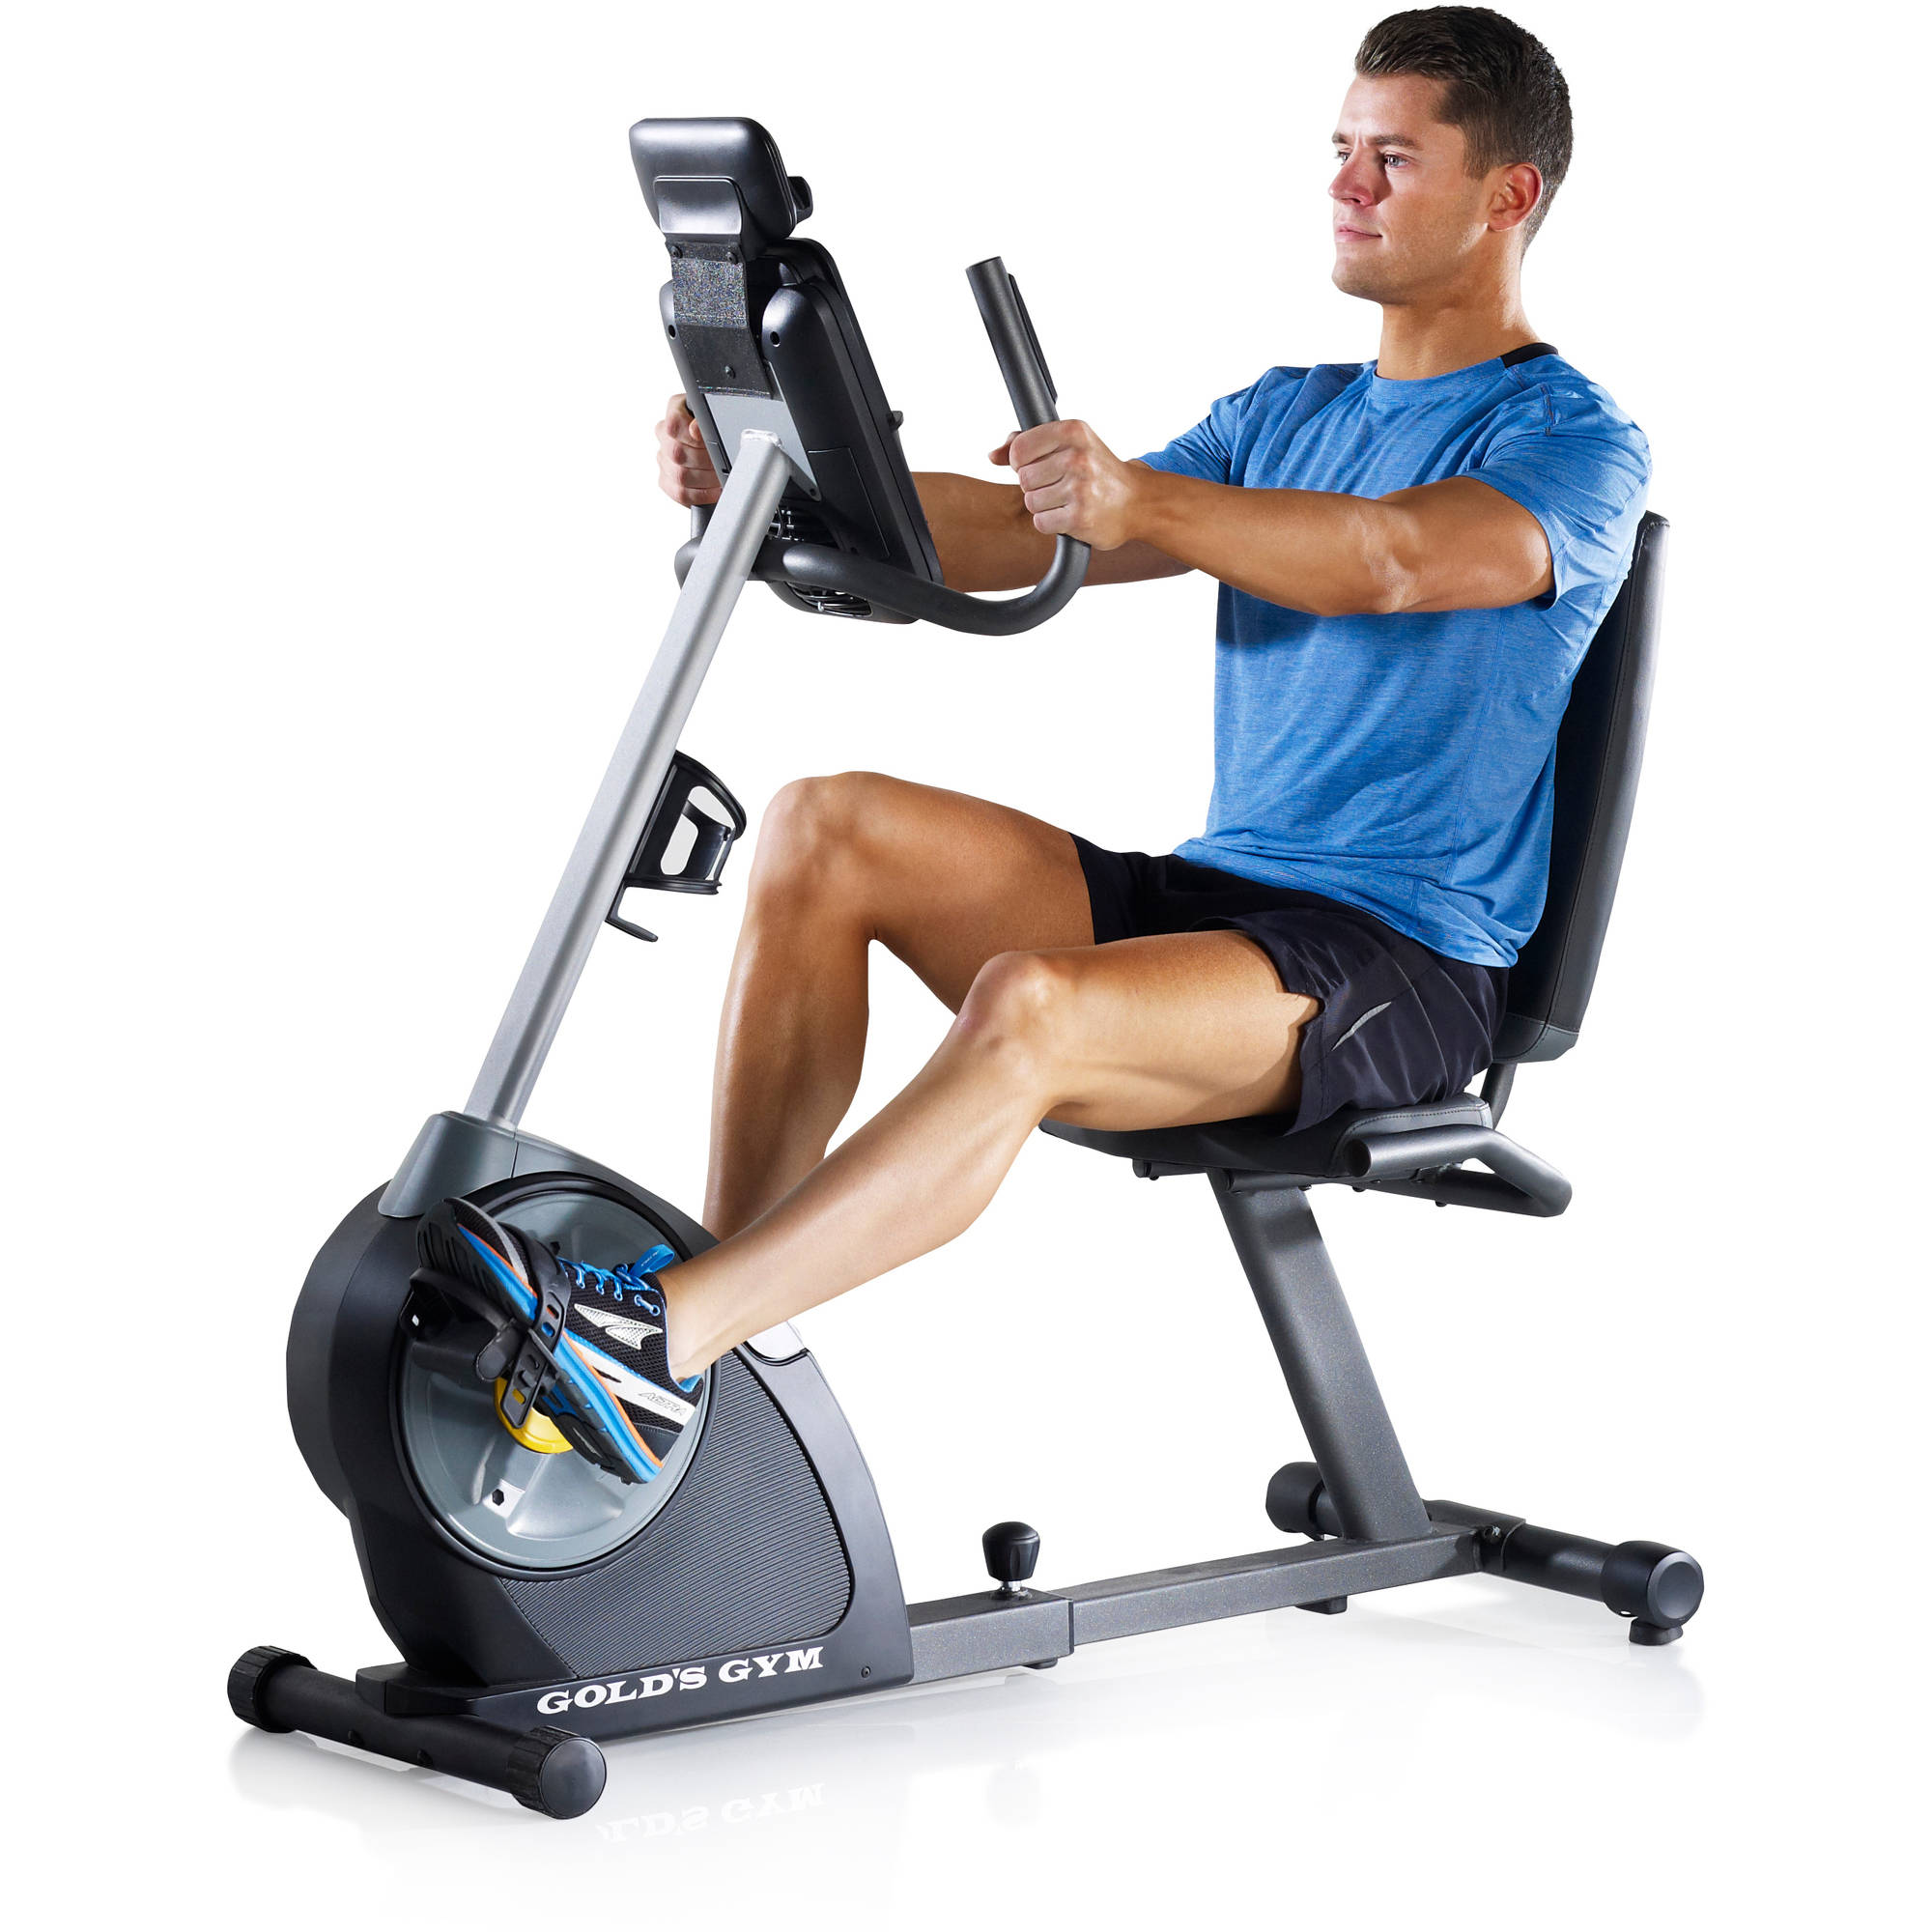 Gold's Gym Cycle Trainer 400 Ri Recumbent Exercise Bike ...